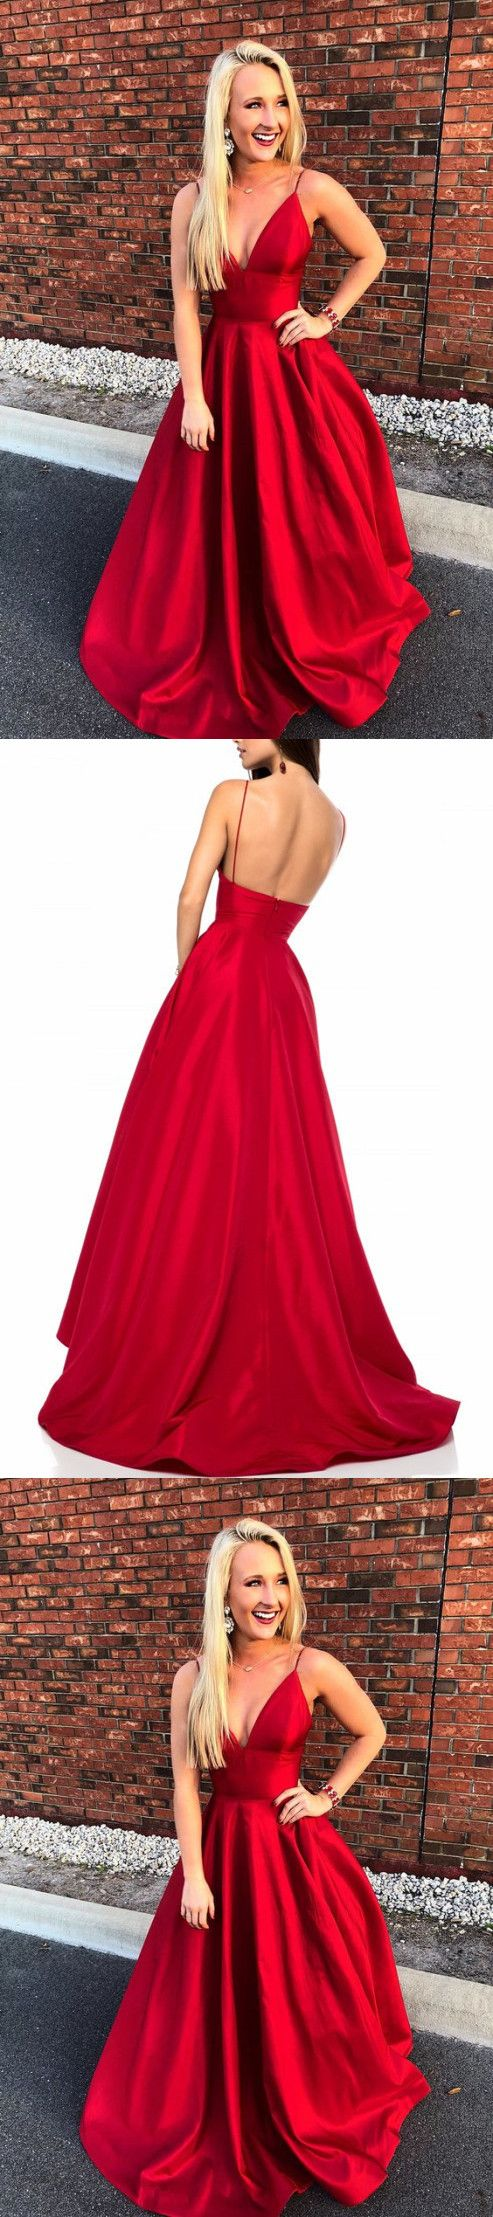 Simple red straps aline vneck prom dresslong evening dress m